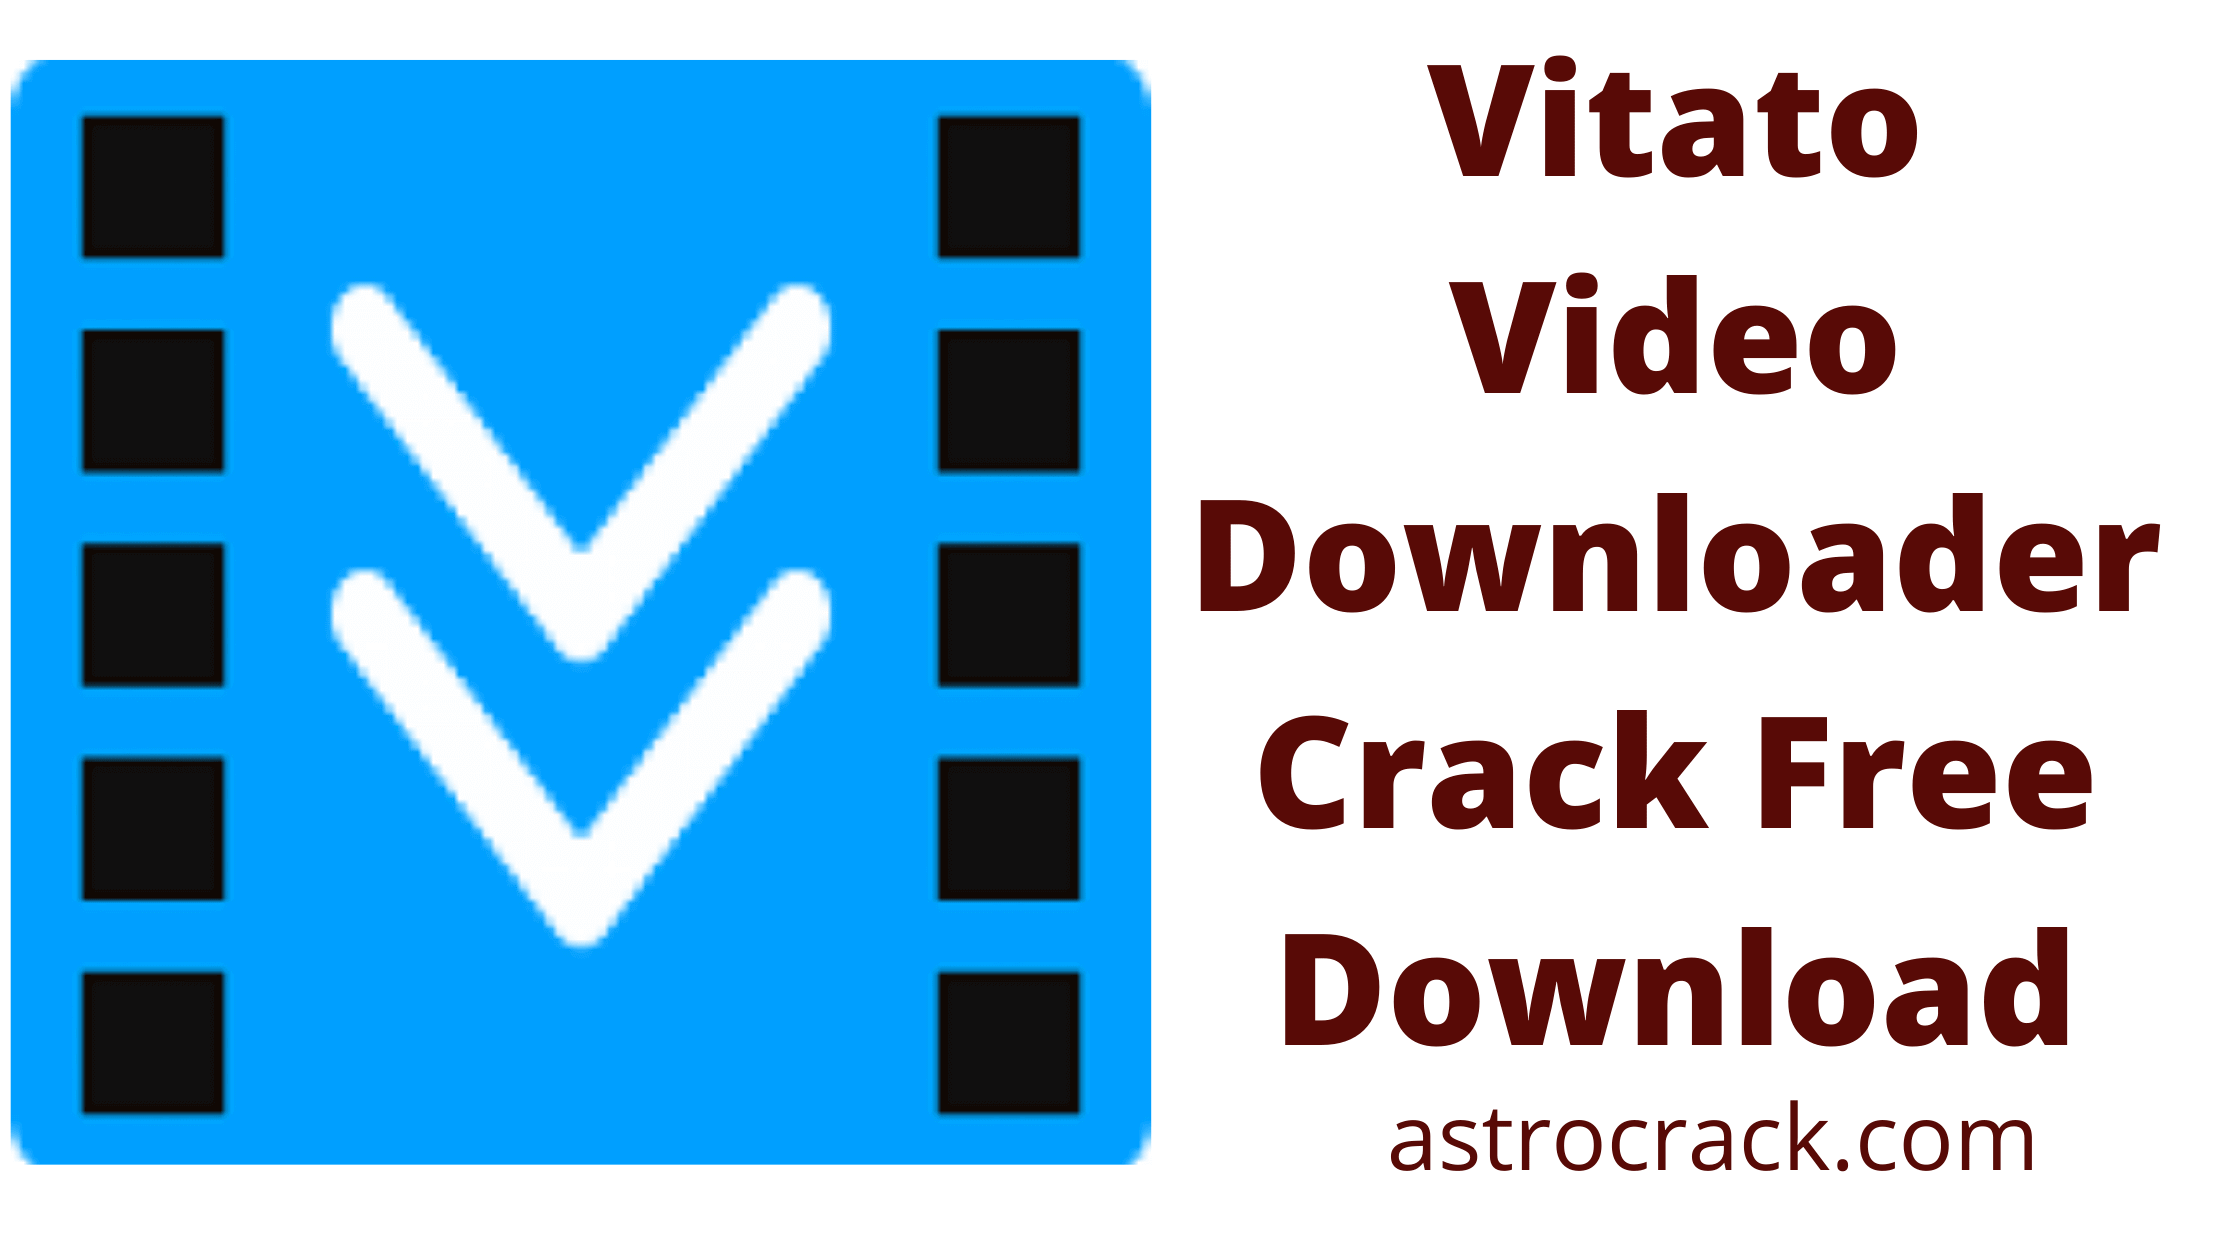 Vitato Video Downloader, Vitato Video Downloader crack, Vitato Video Downloader crack download, Vitato Video Downloader Crack patched, Vitato Video Downloader download